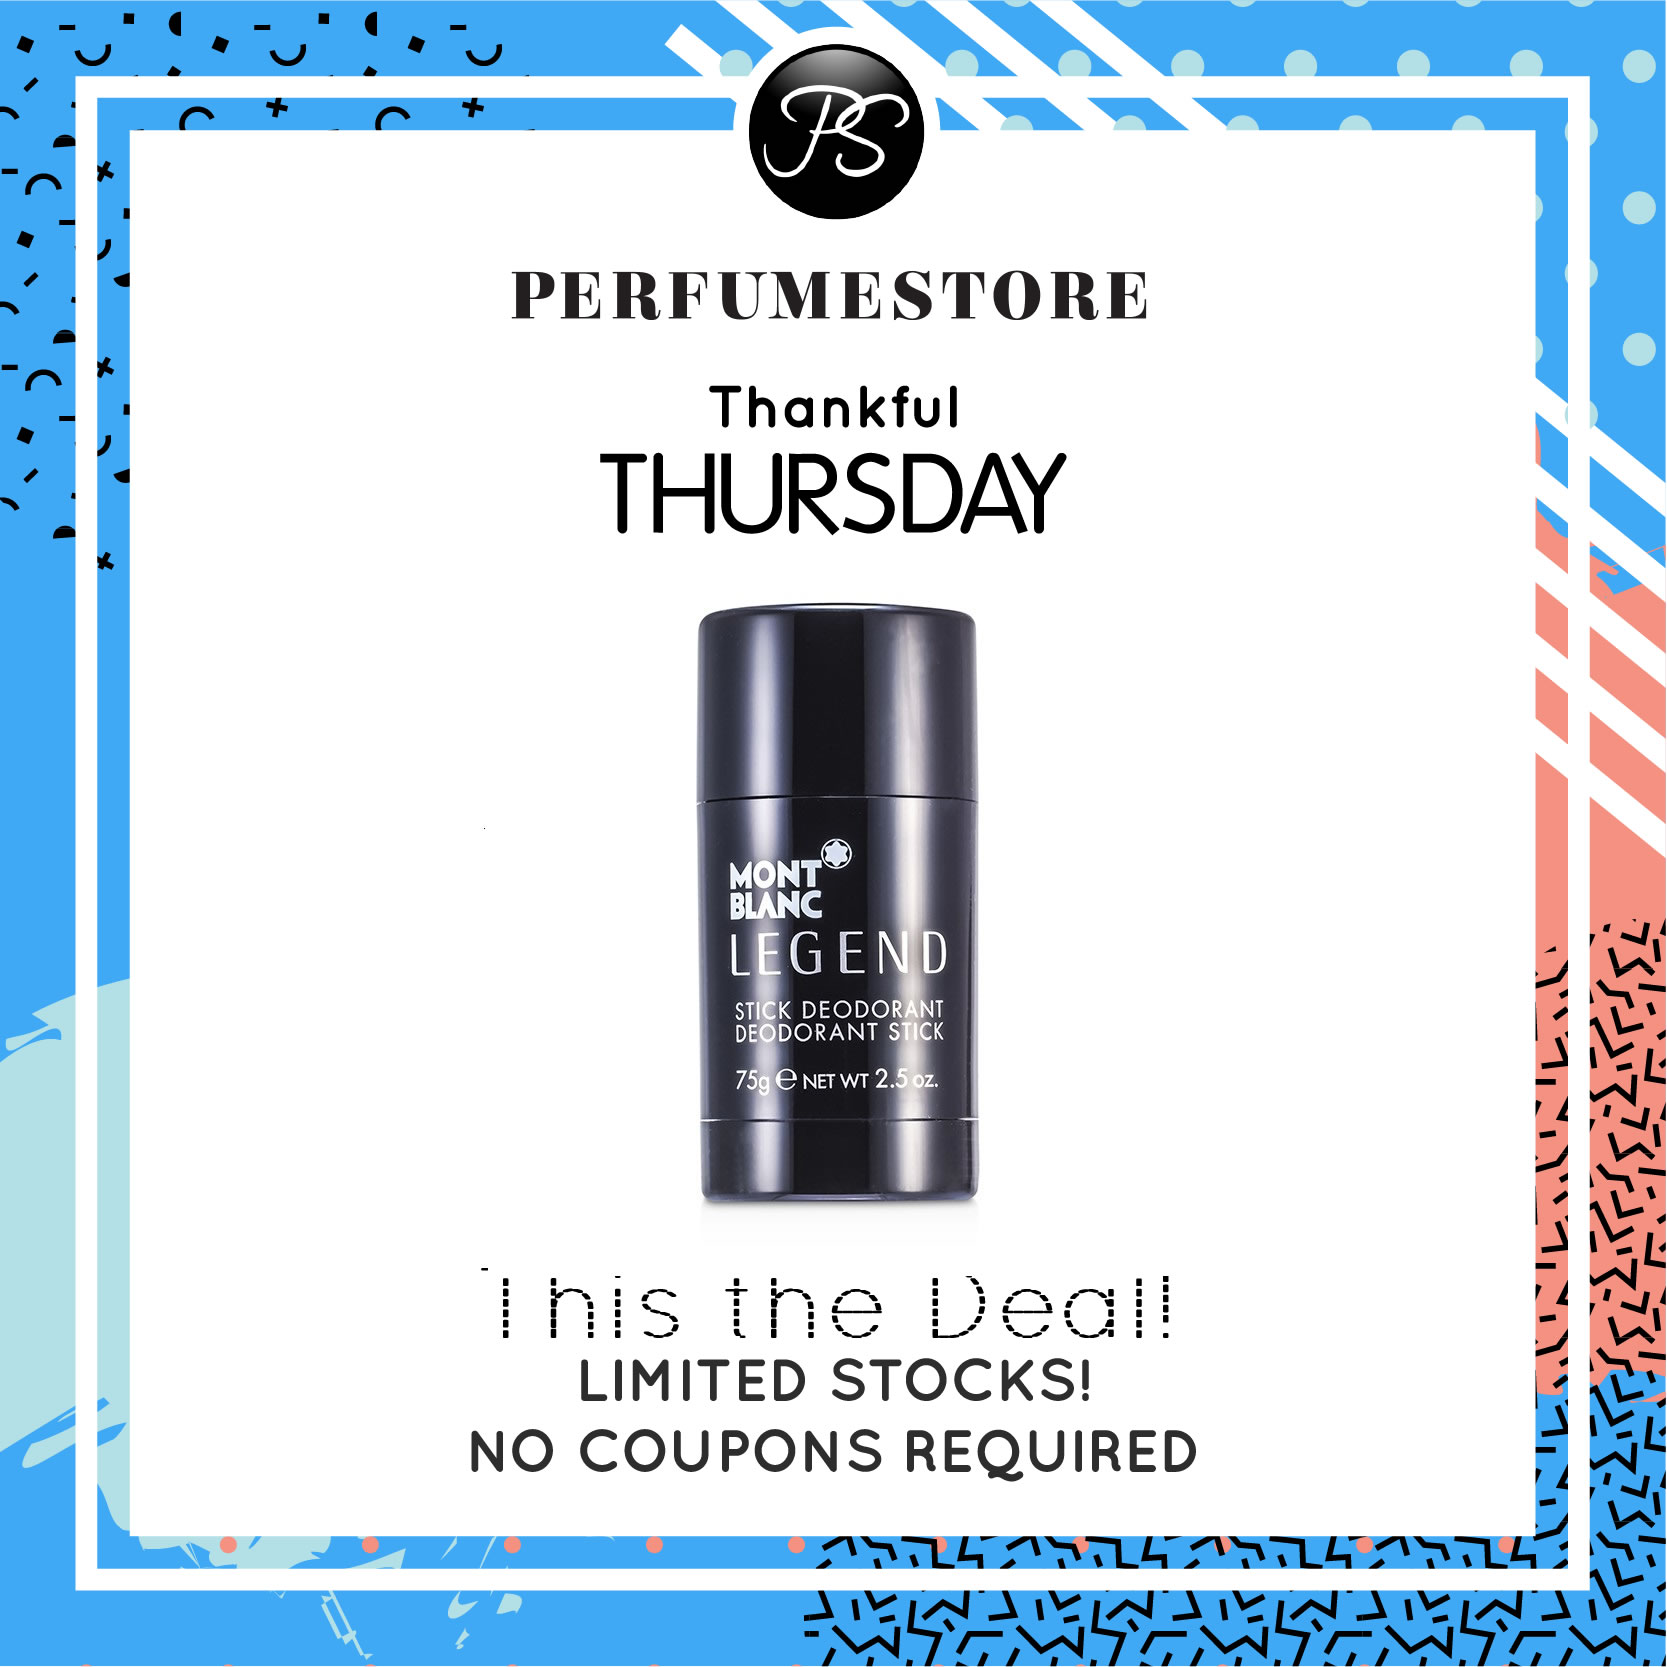 MONT BLANC LEGEND DEODORANT FOR MEN [THANKFUL THURSDAY SPECIAL]